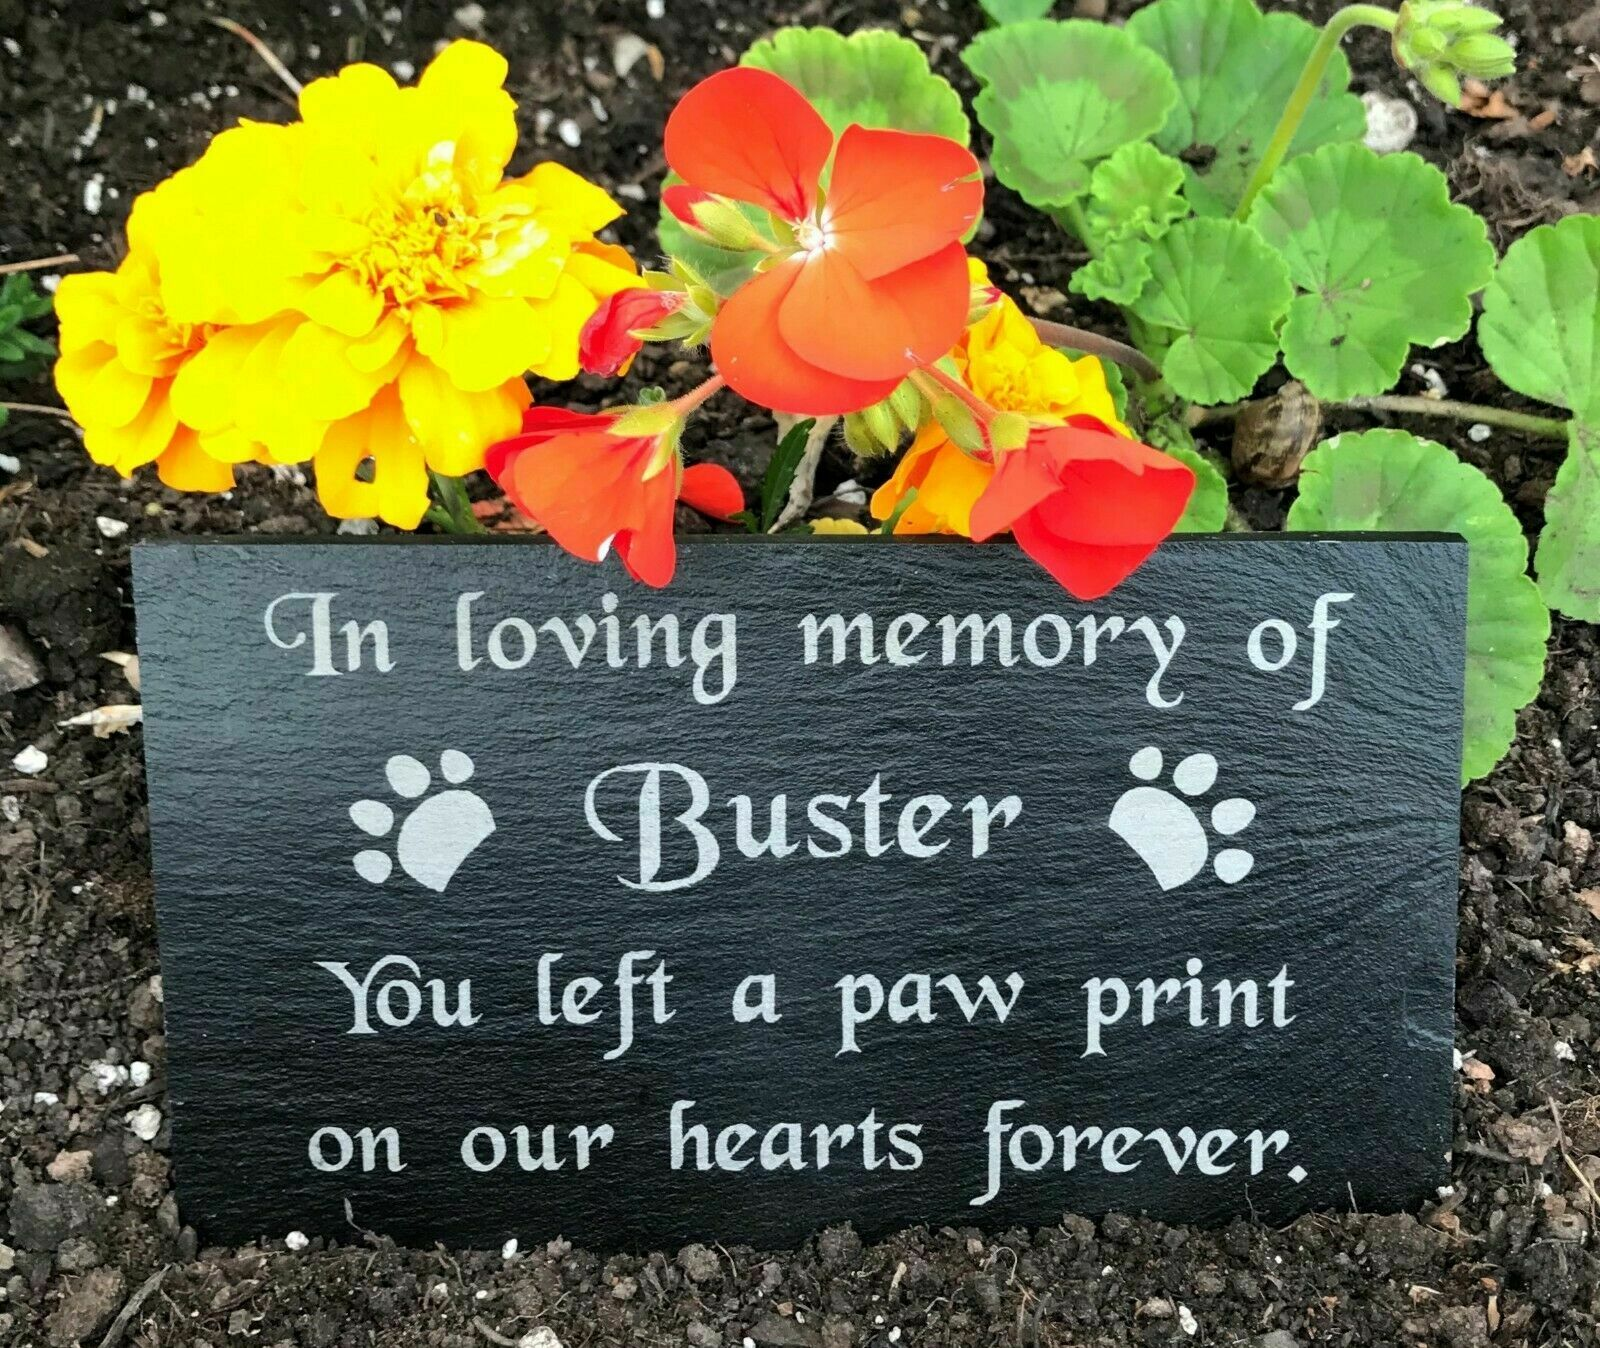 Personalised Engraved Pet Memorial Headstone Grave Marker Plaque Dog Cat Rabbits